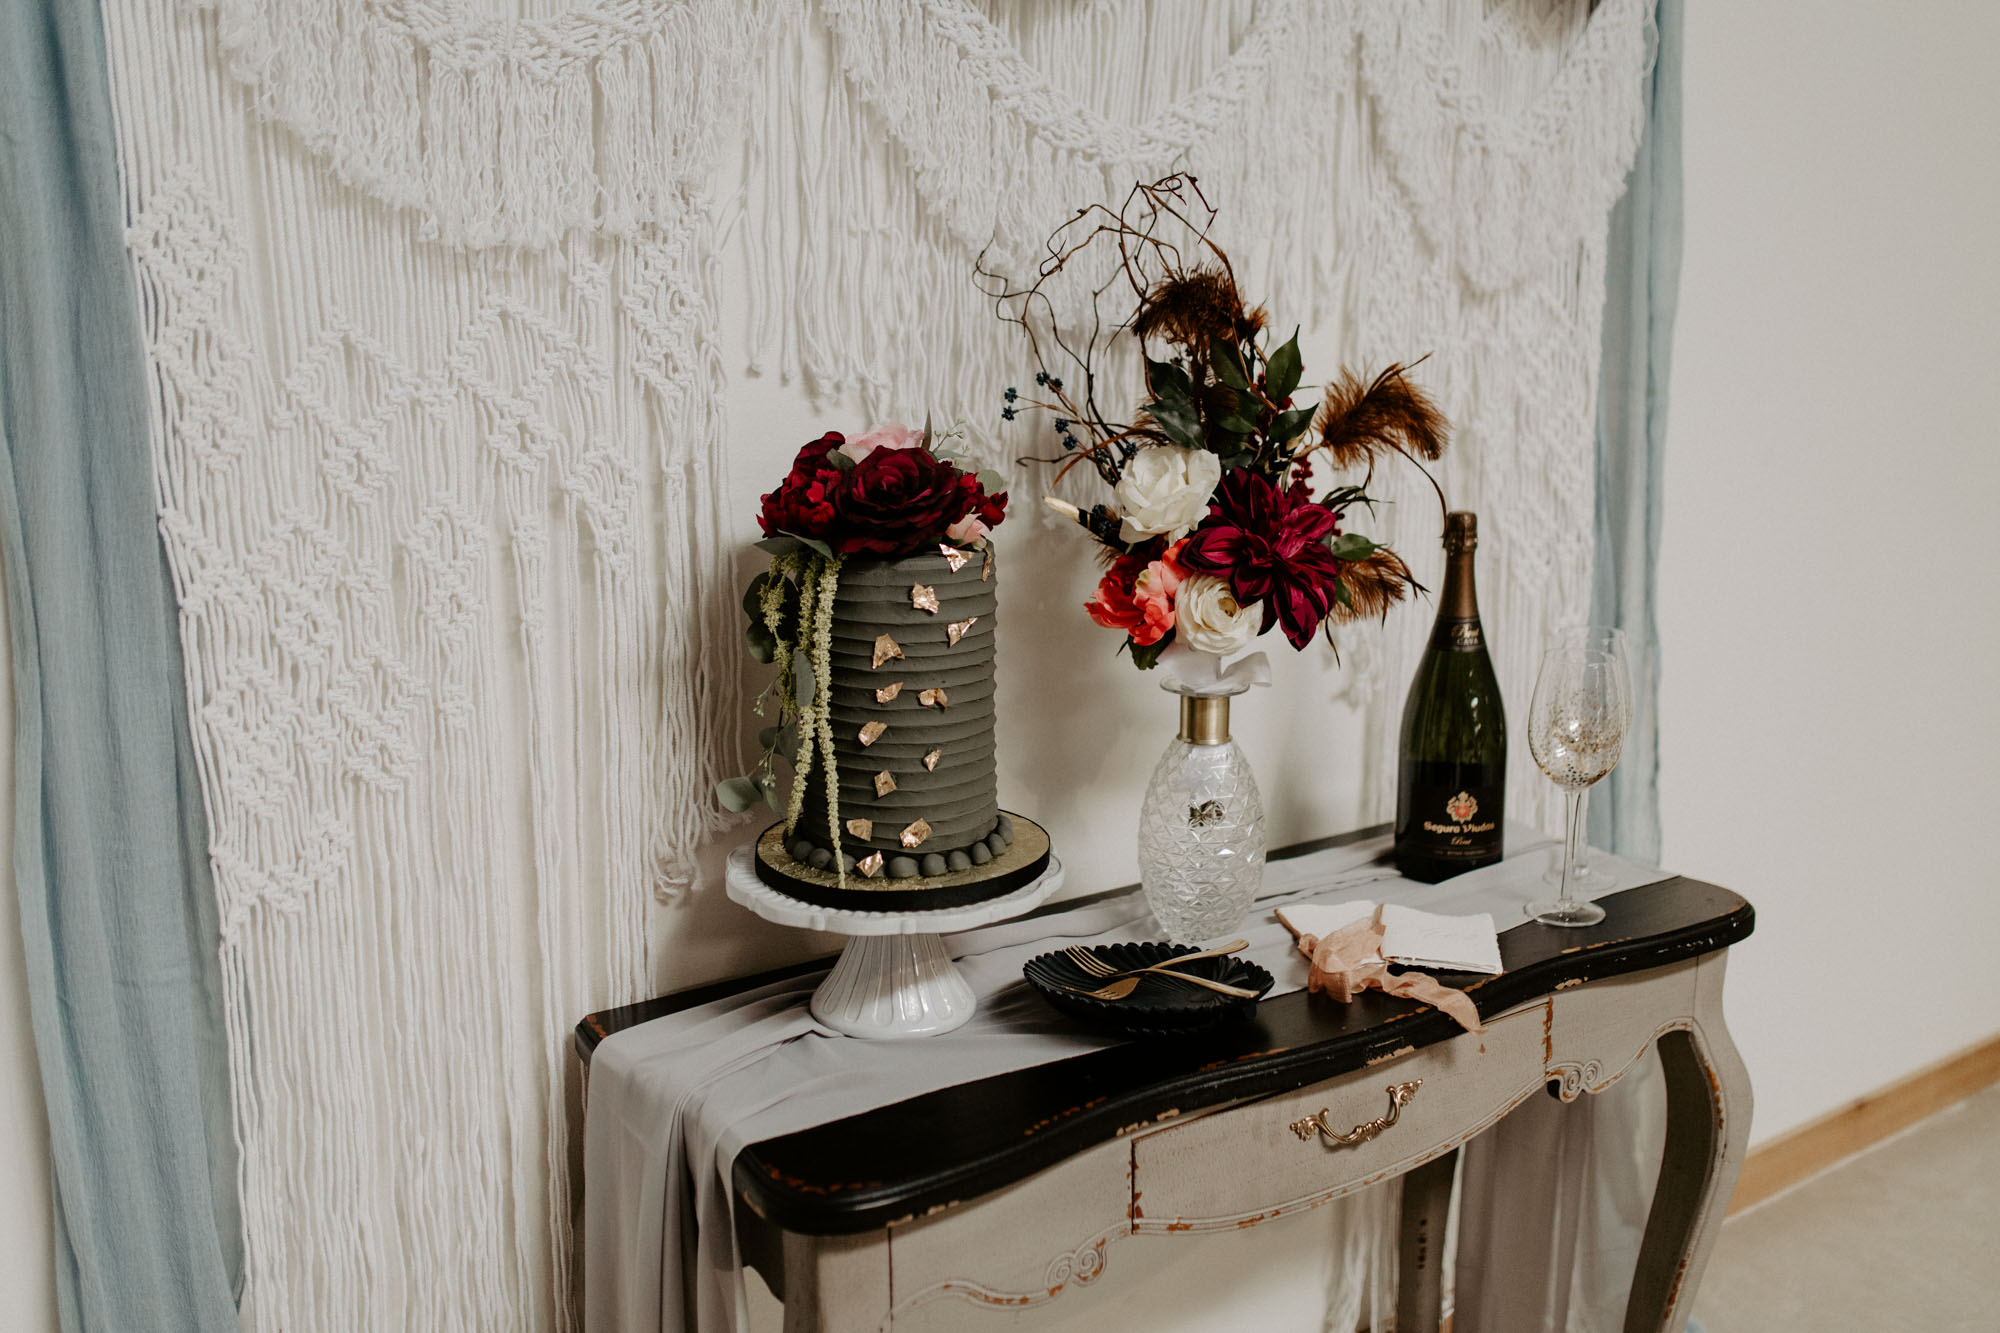 moody cake table with macrame backdrop